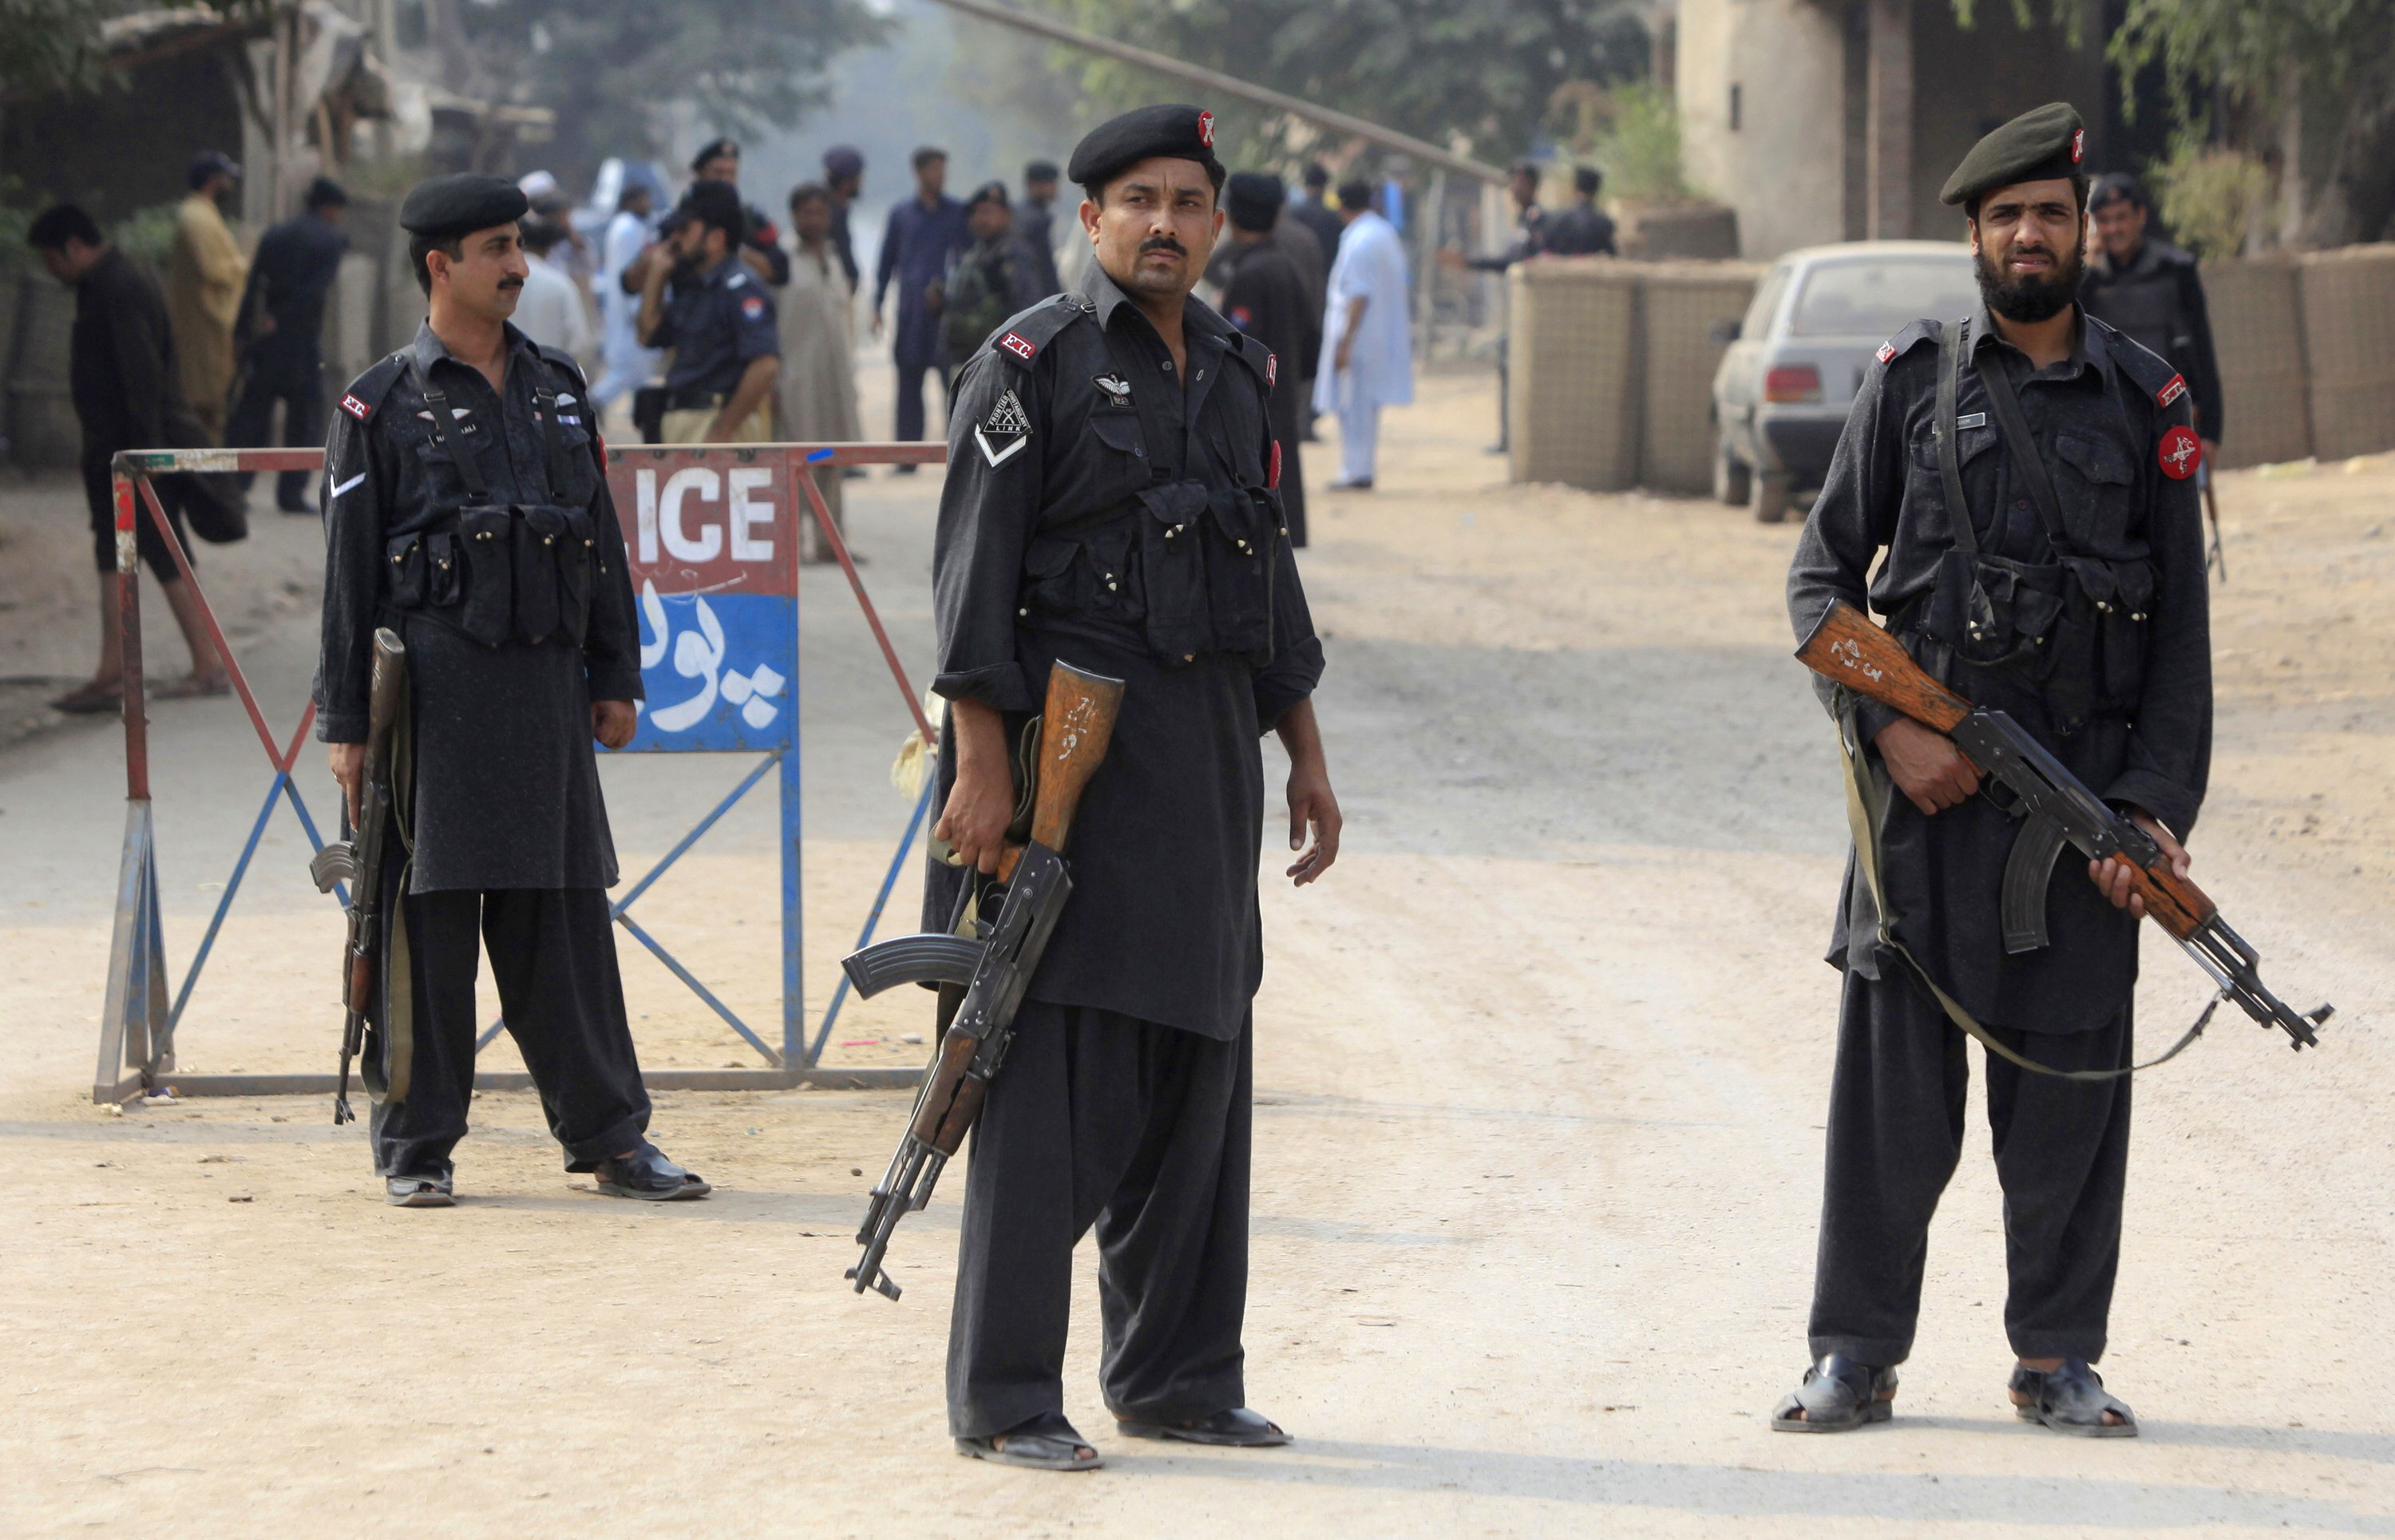 Peshawar police launches a large-scale security review, saying government institutes were vulnerable despite security measures. PHOTO: REUTERS